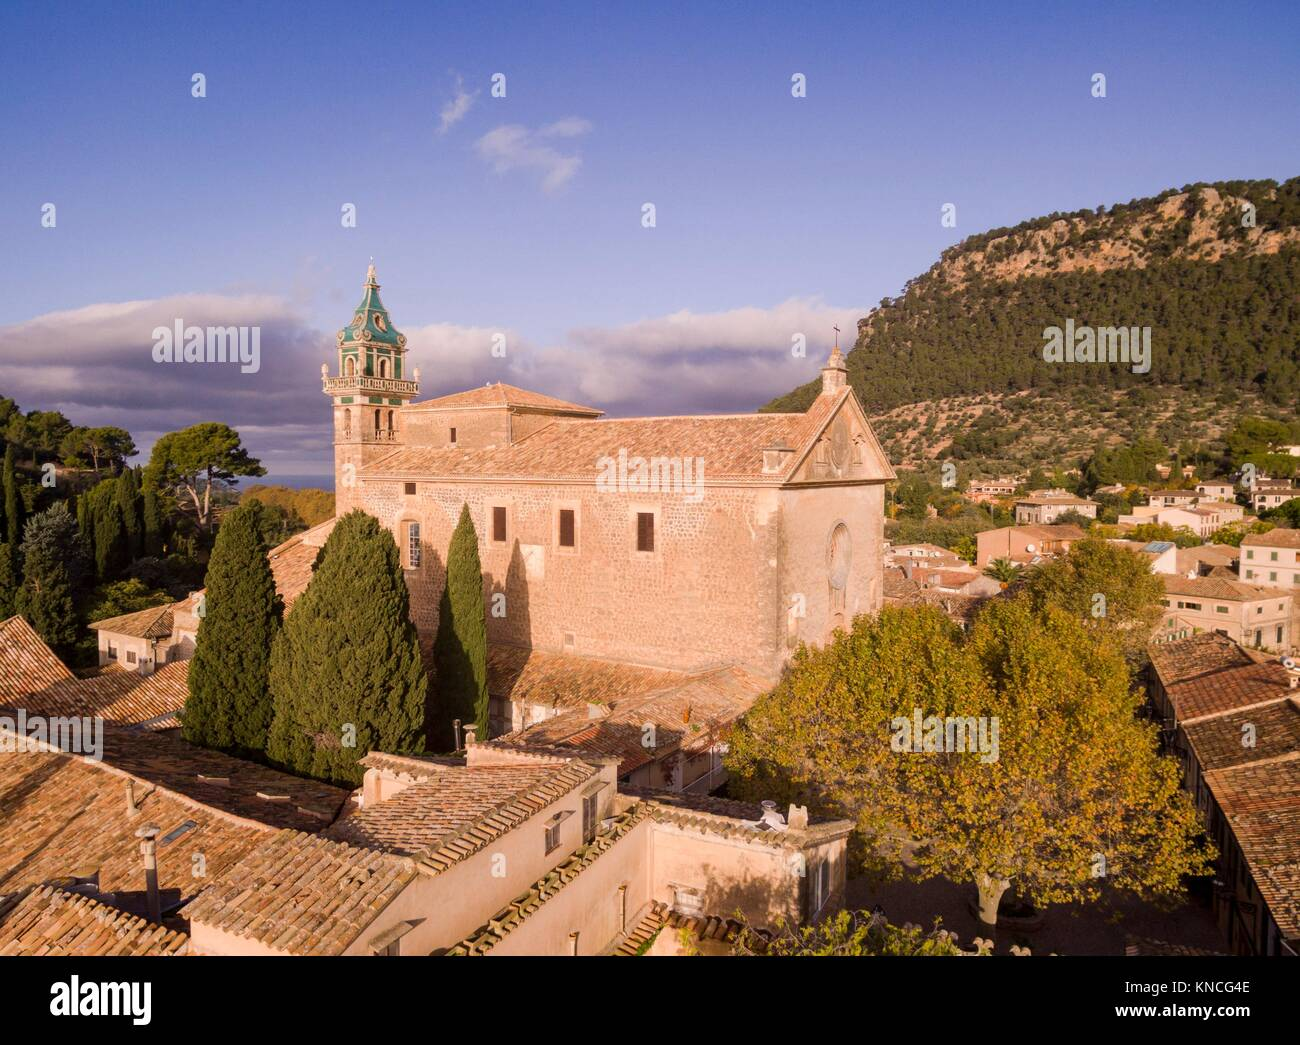 Cartuja , Valldemossa, Sierra de Tramuntana, Mallorca, Balearic Islands, spain, europe. - Stock Image